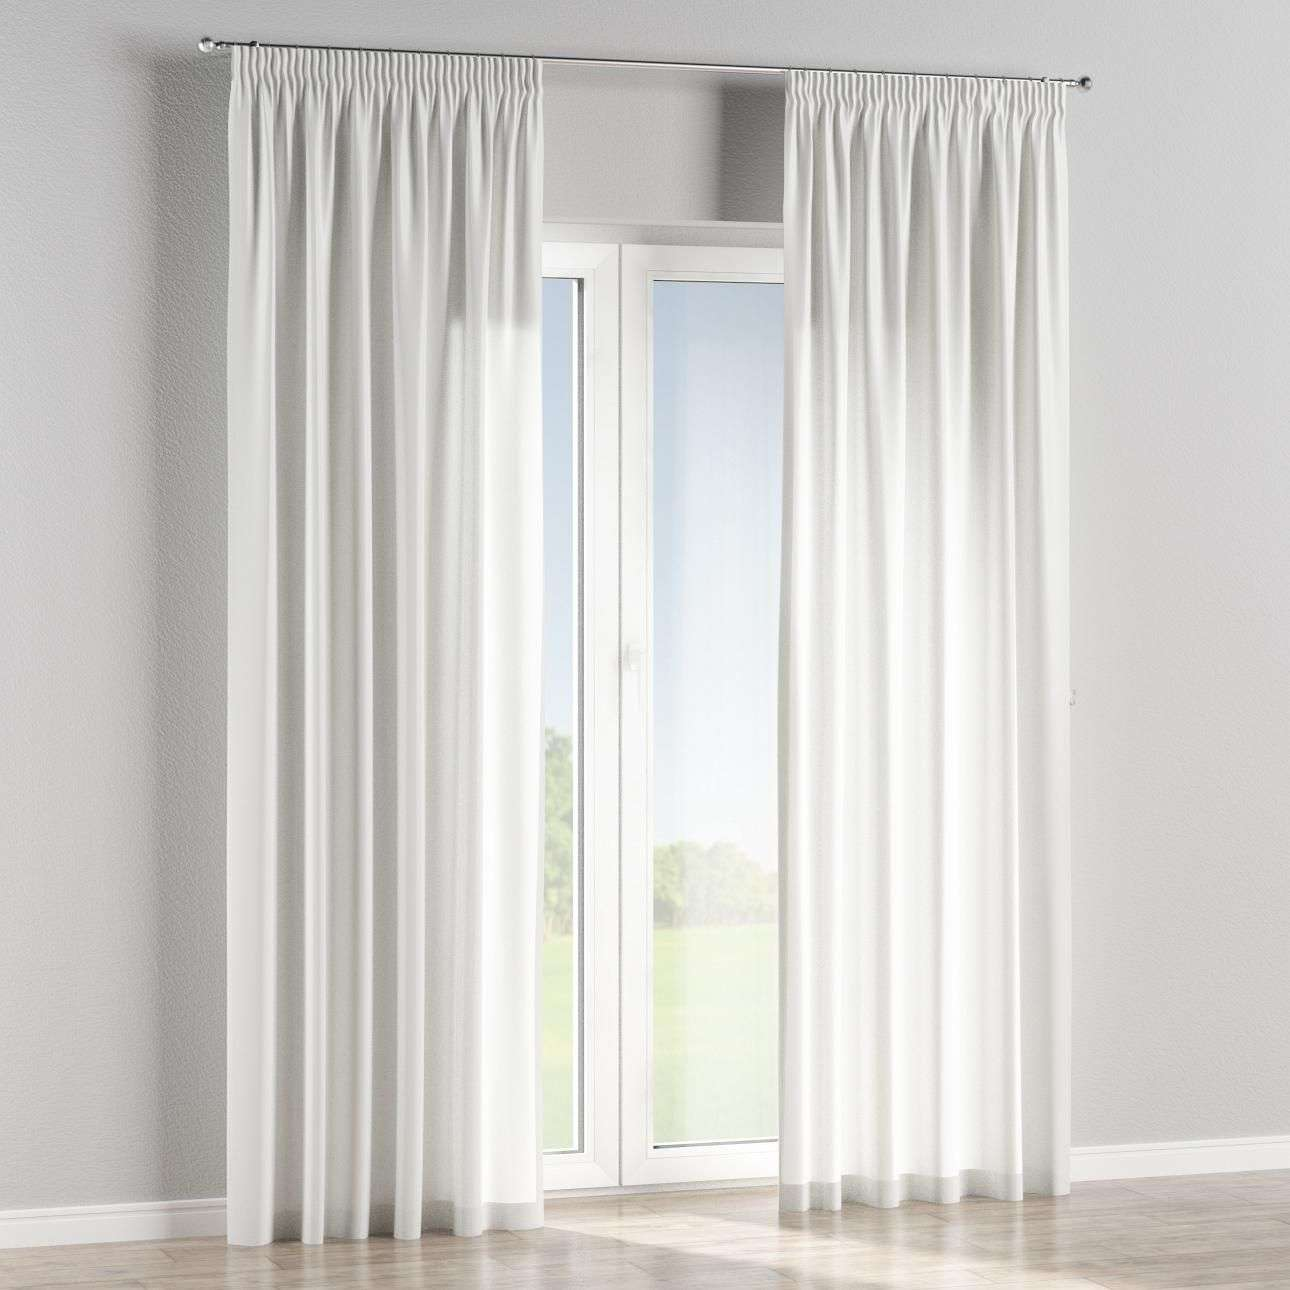 Pencil pleat curtains in collection Milano, fabric: 150-39